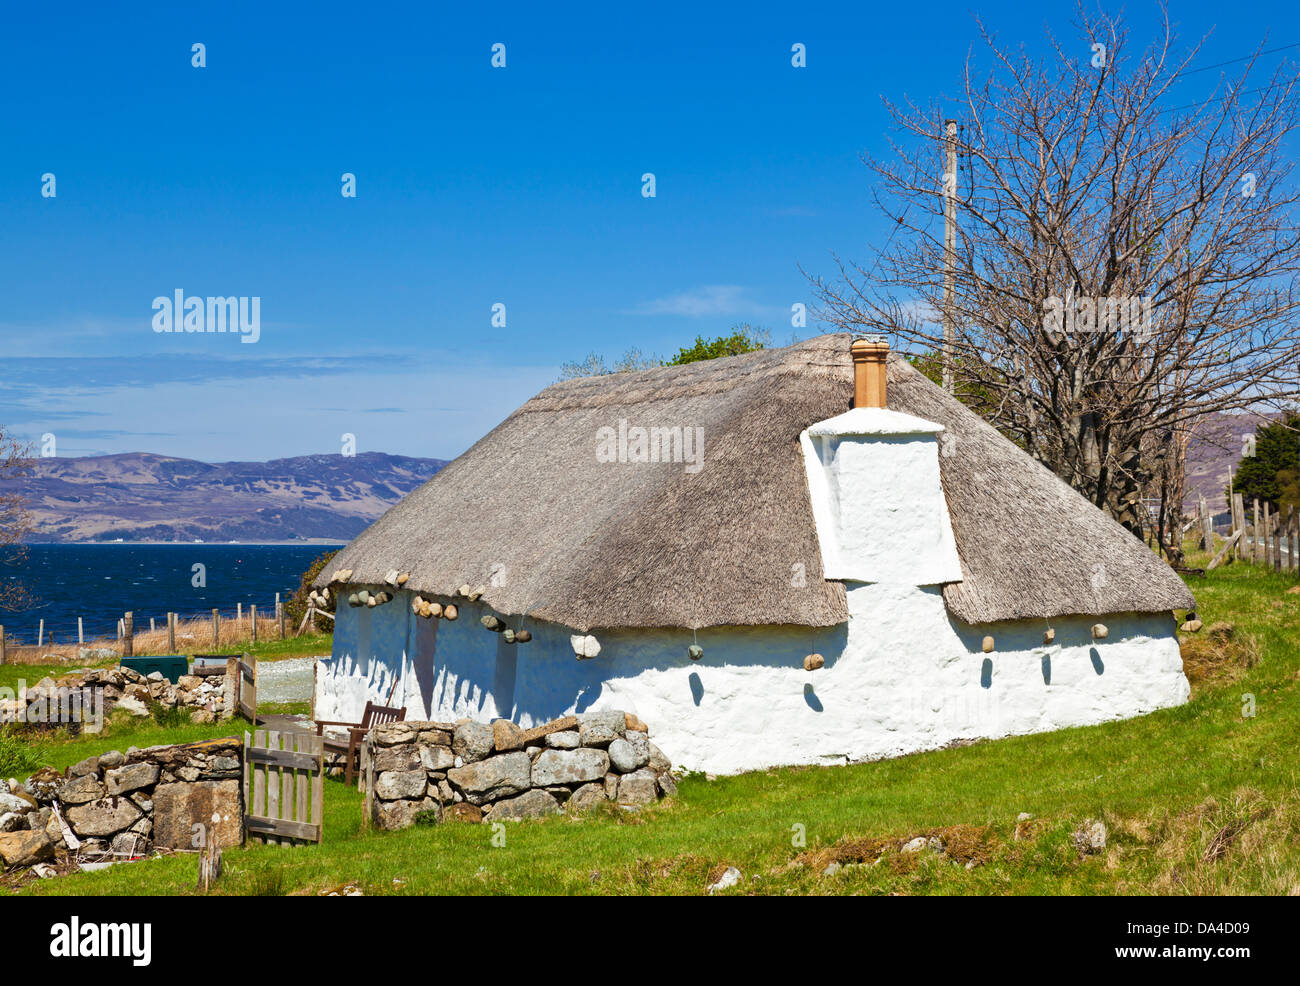 Old fashioned traditional thatched roof cottage on the Isle of Skye Highlands and islands Scotland UK GB EU Europe - Stock Image